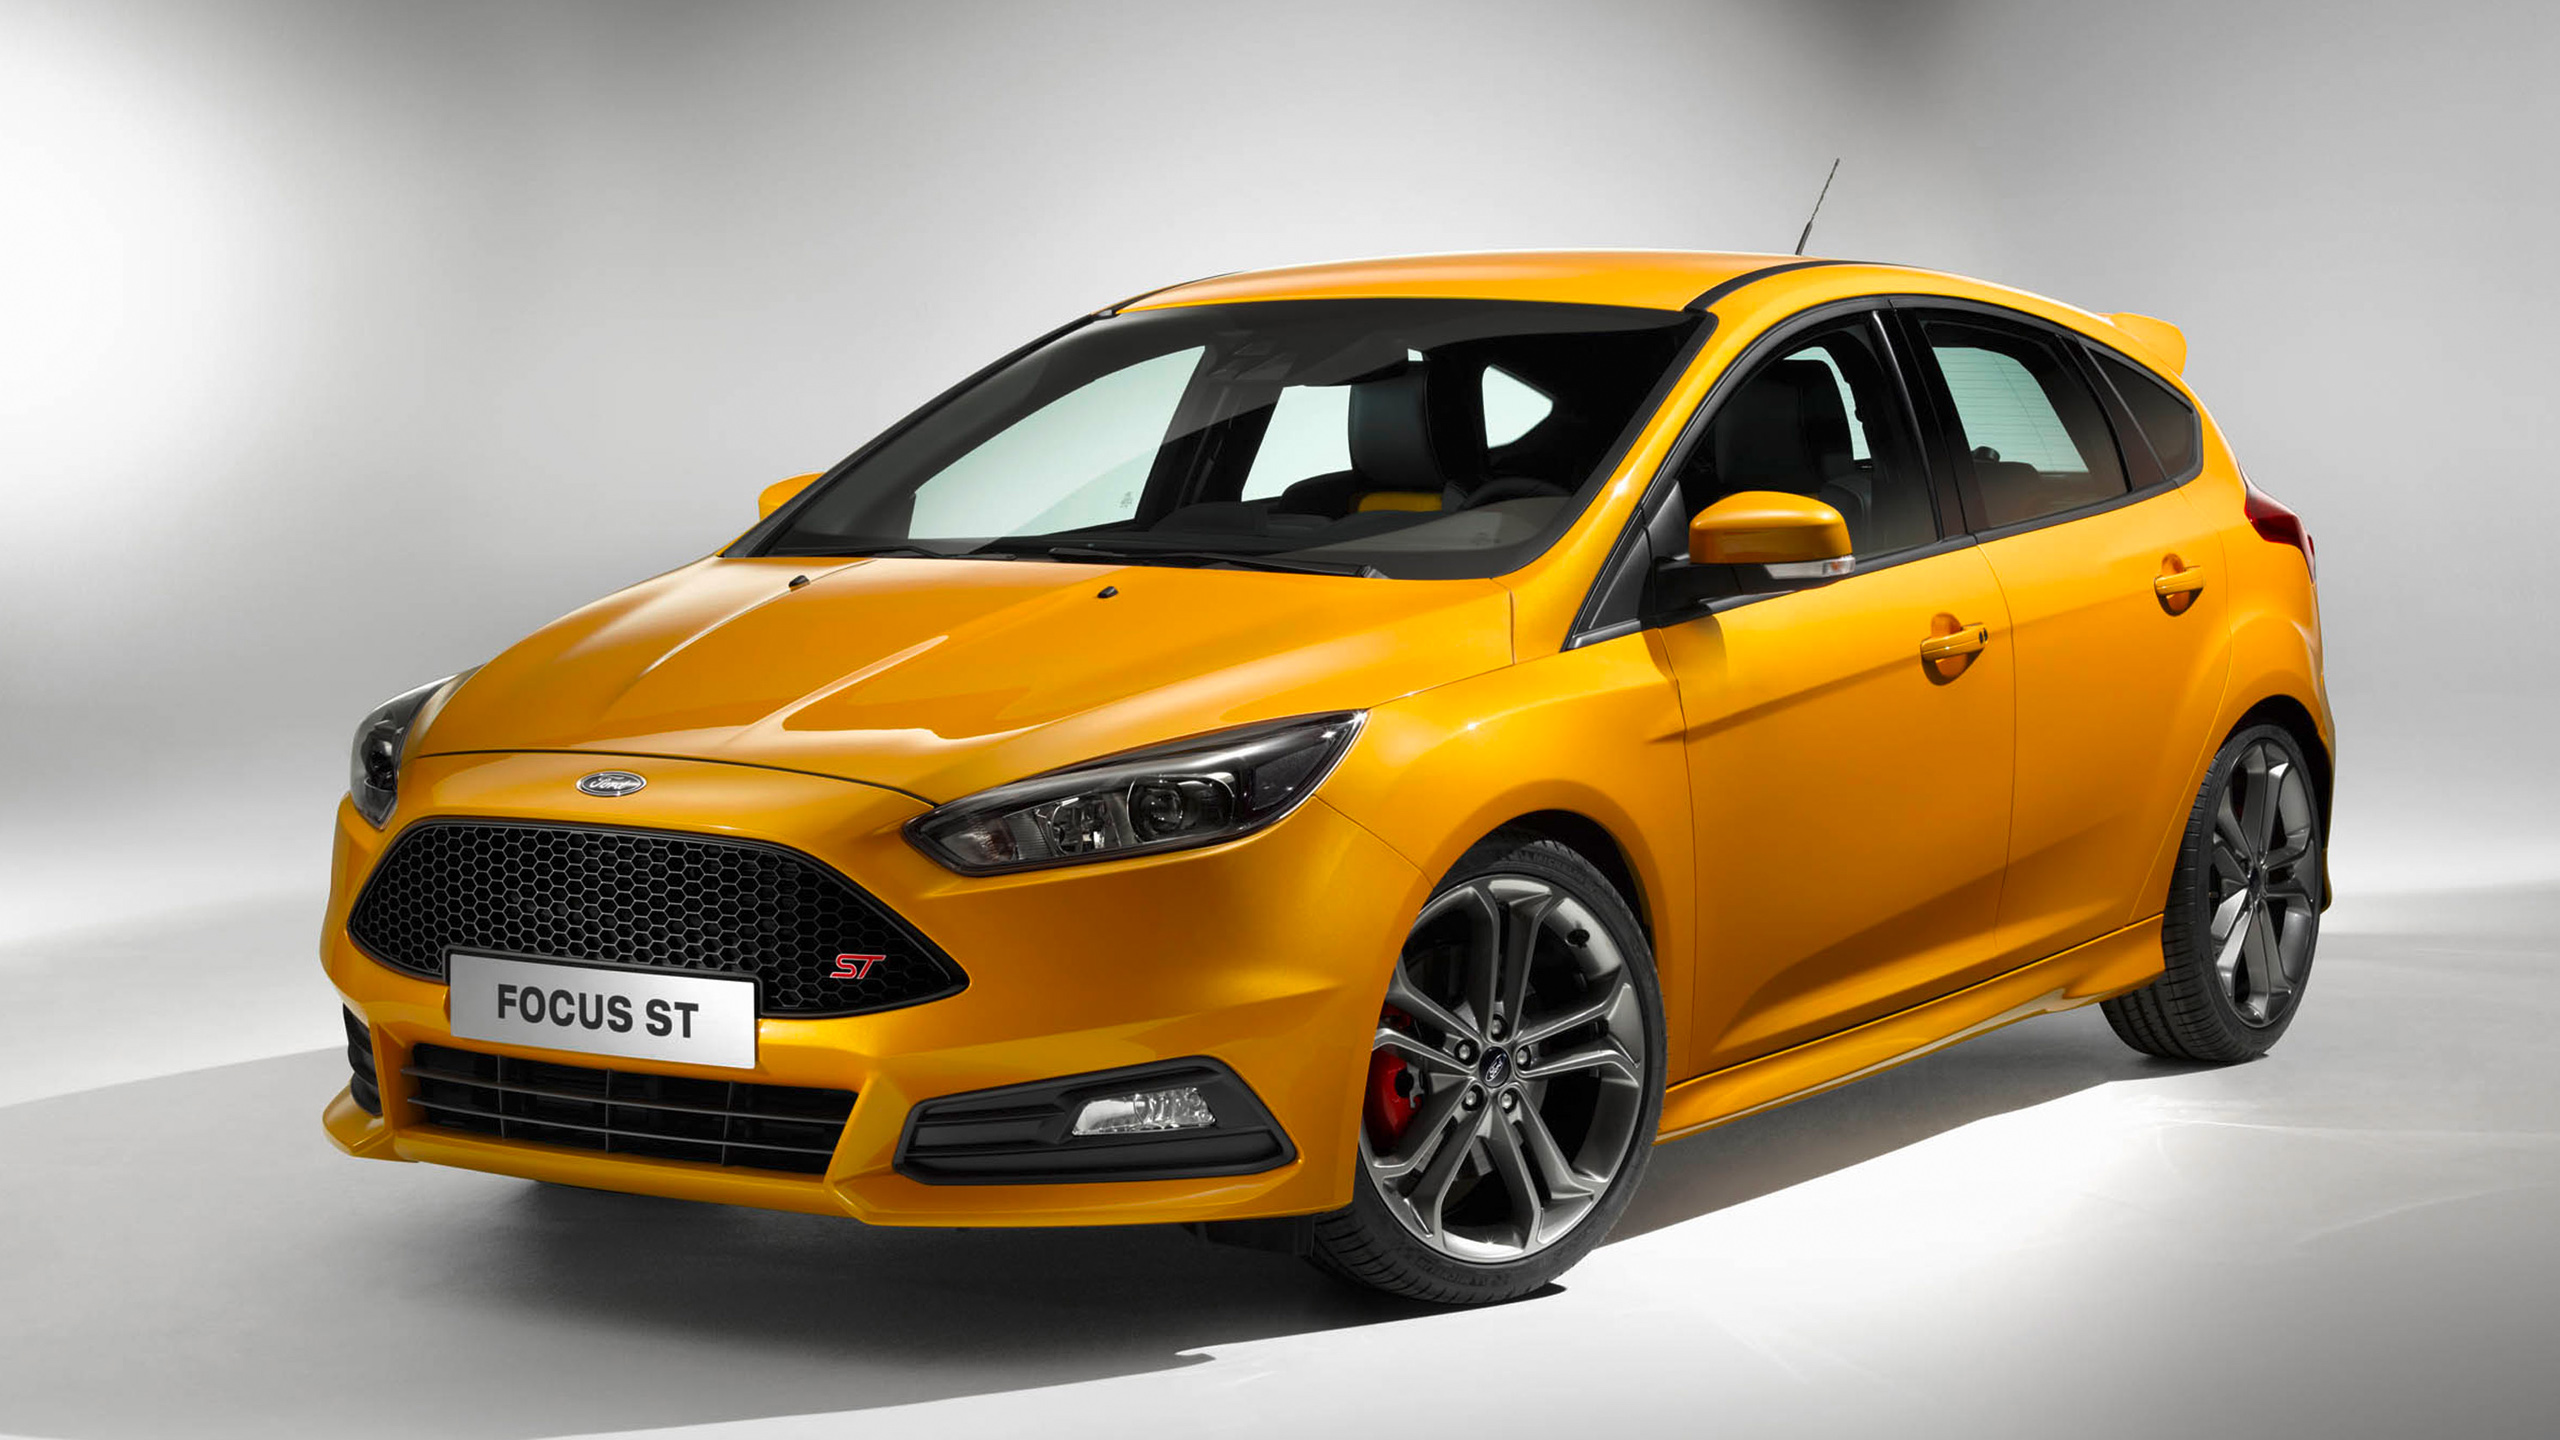 2015 ford focus st wallpaper hd car wallpapers id 4604. Black Bedroom Furniture Sets. Home Design Ideas